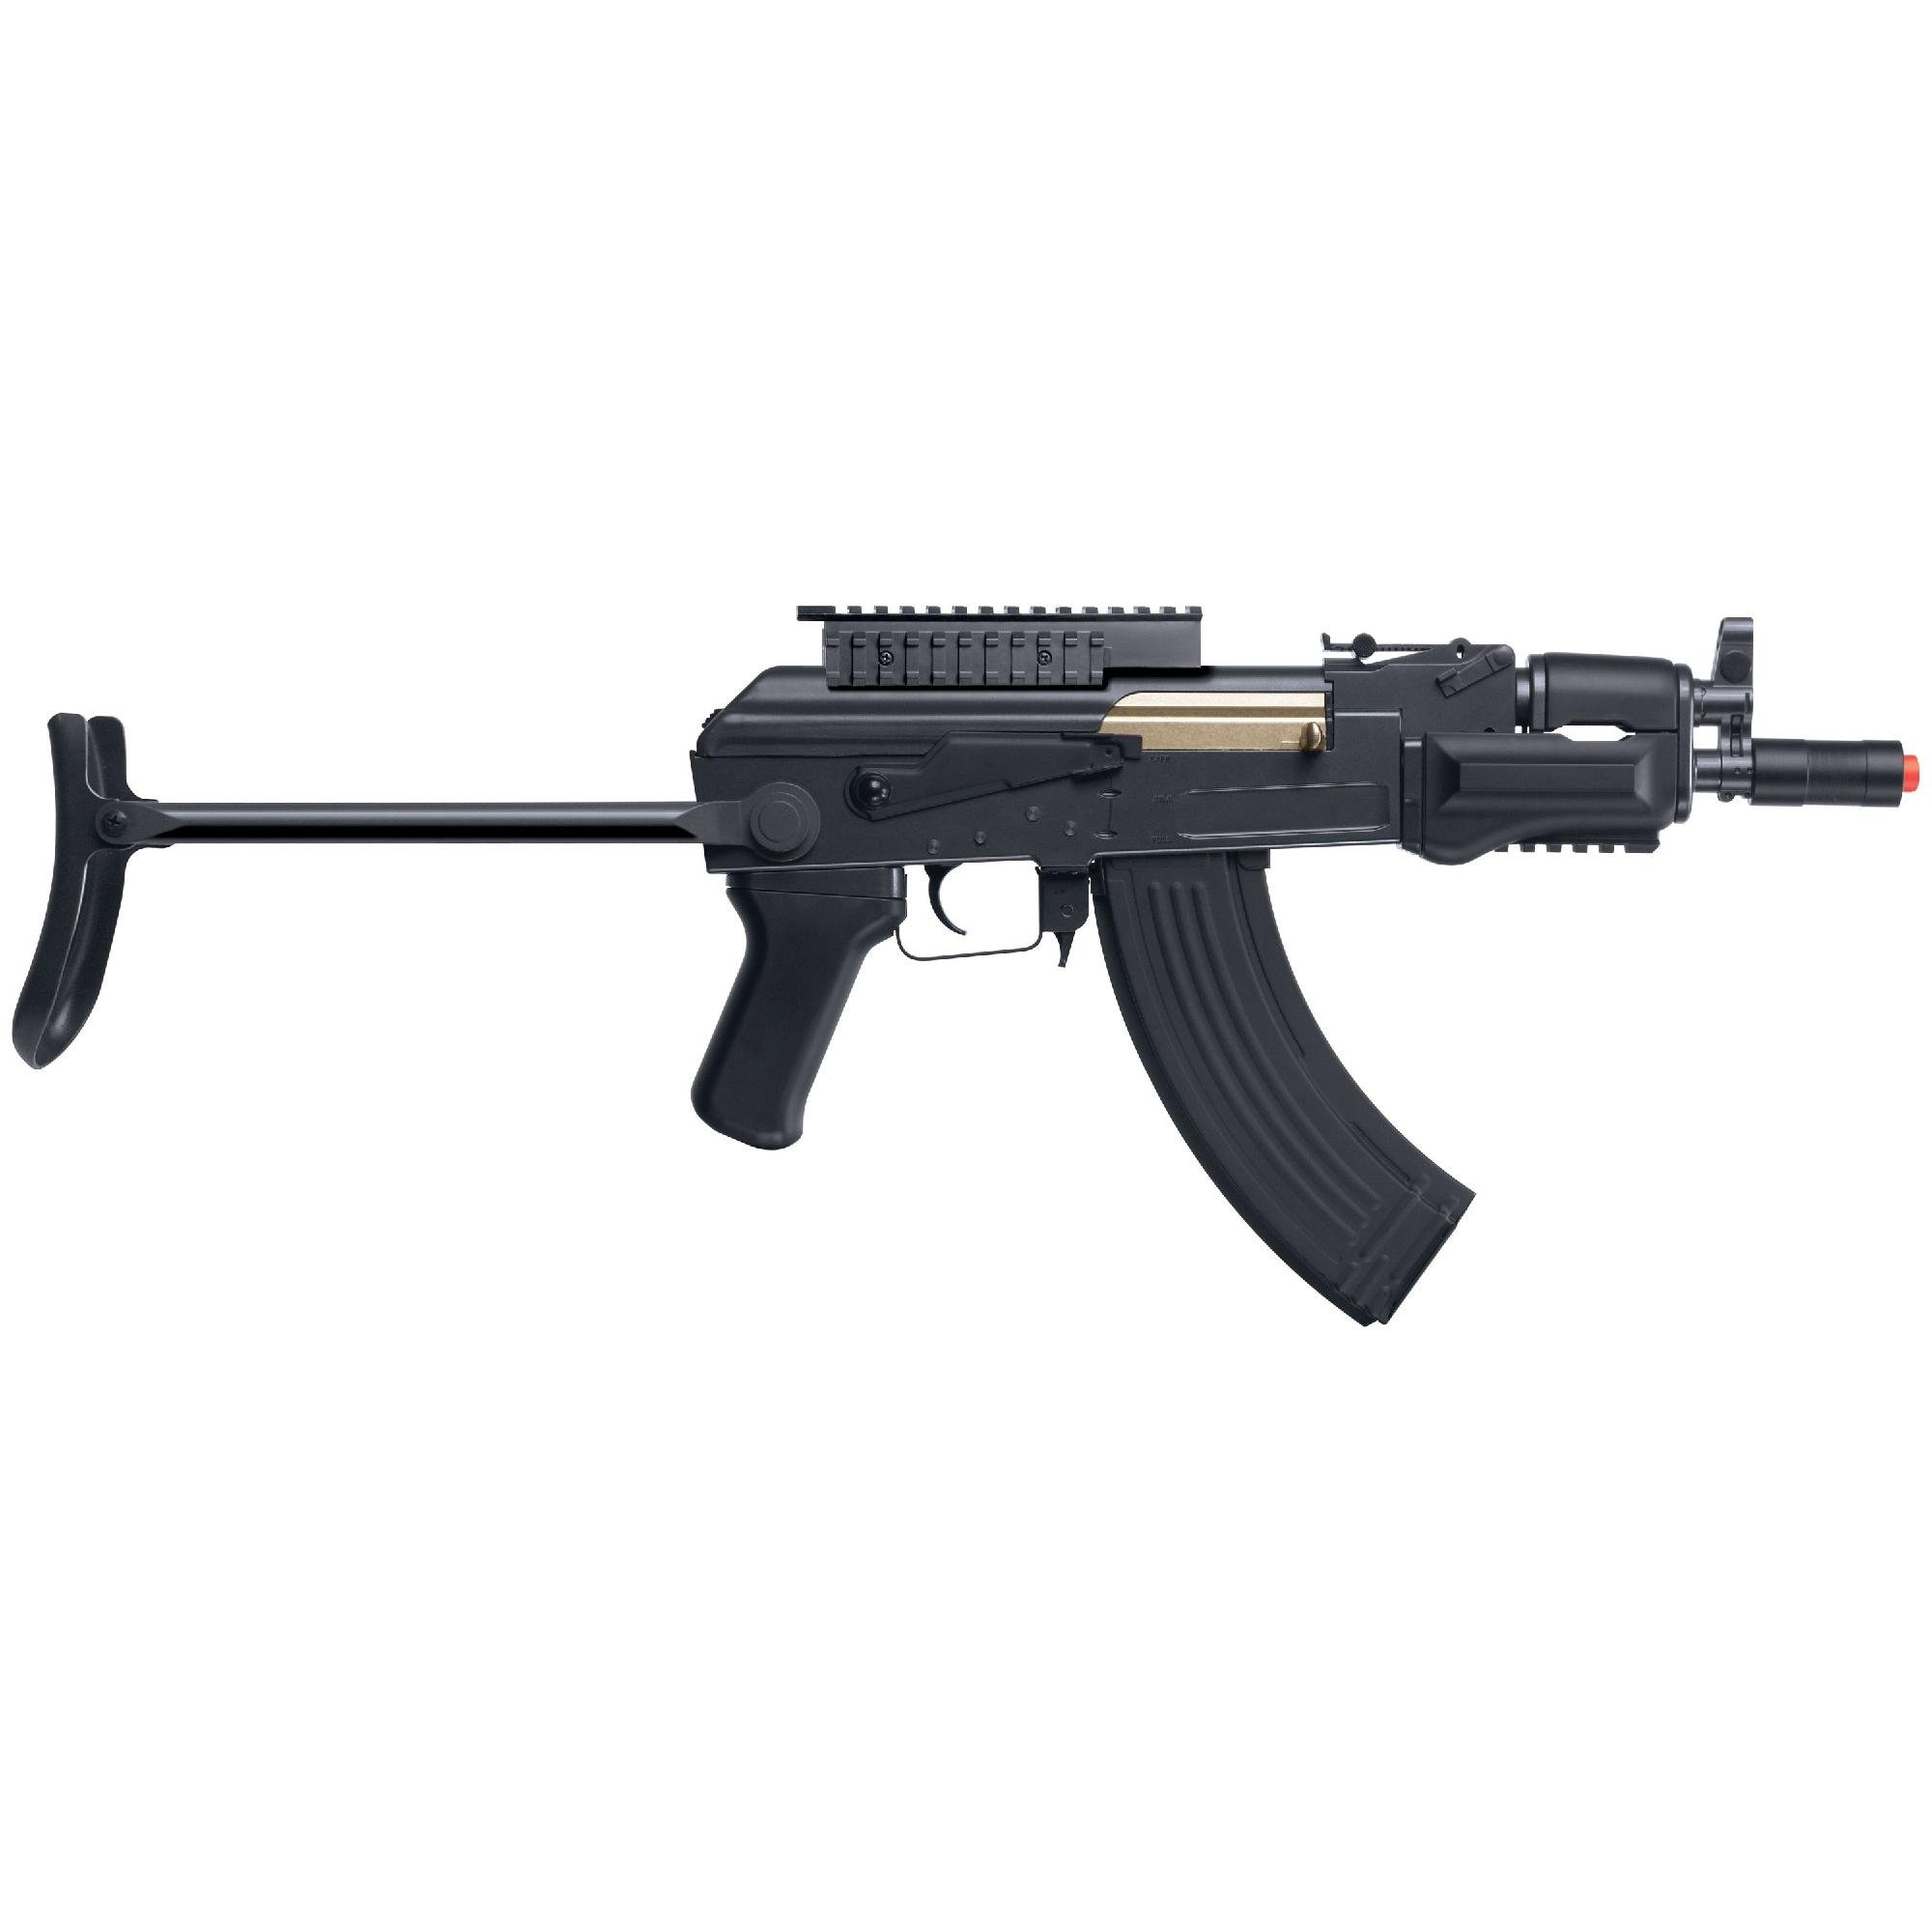 Game Face GF76 Carbine Airsoft Rifle, Black by Game Face